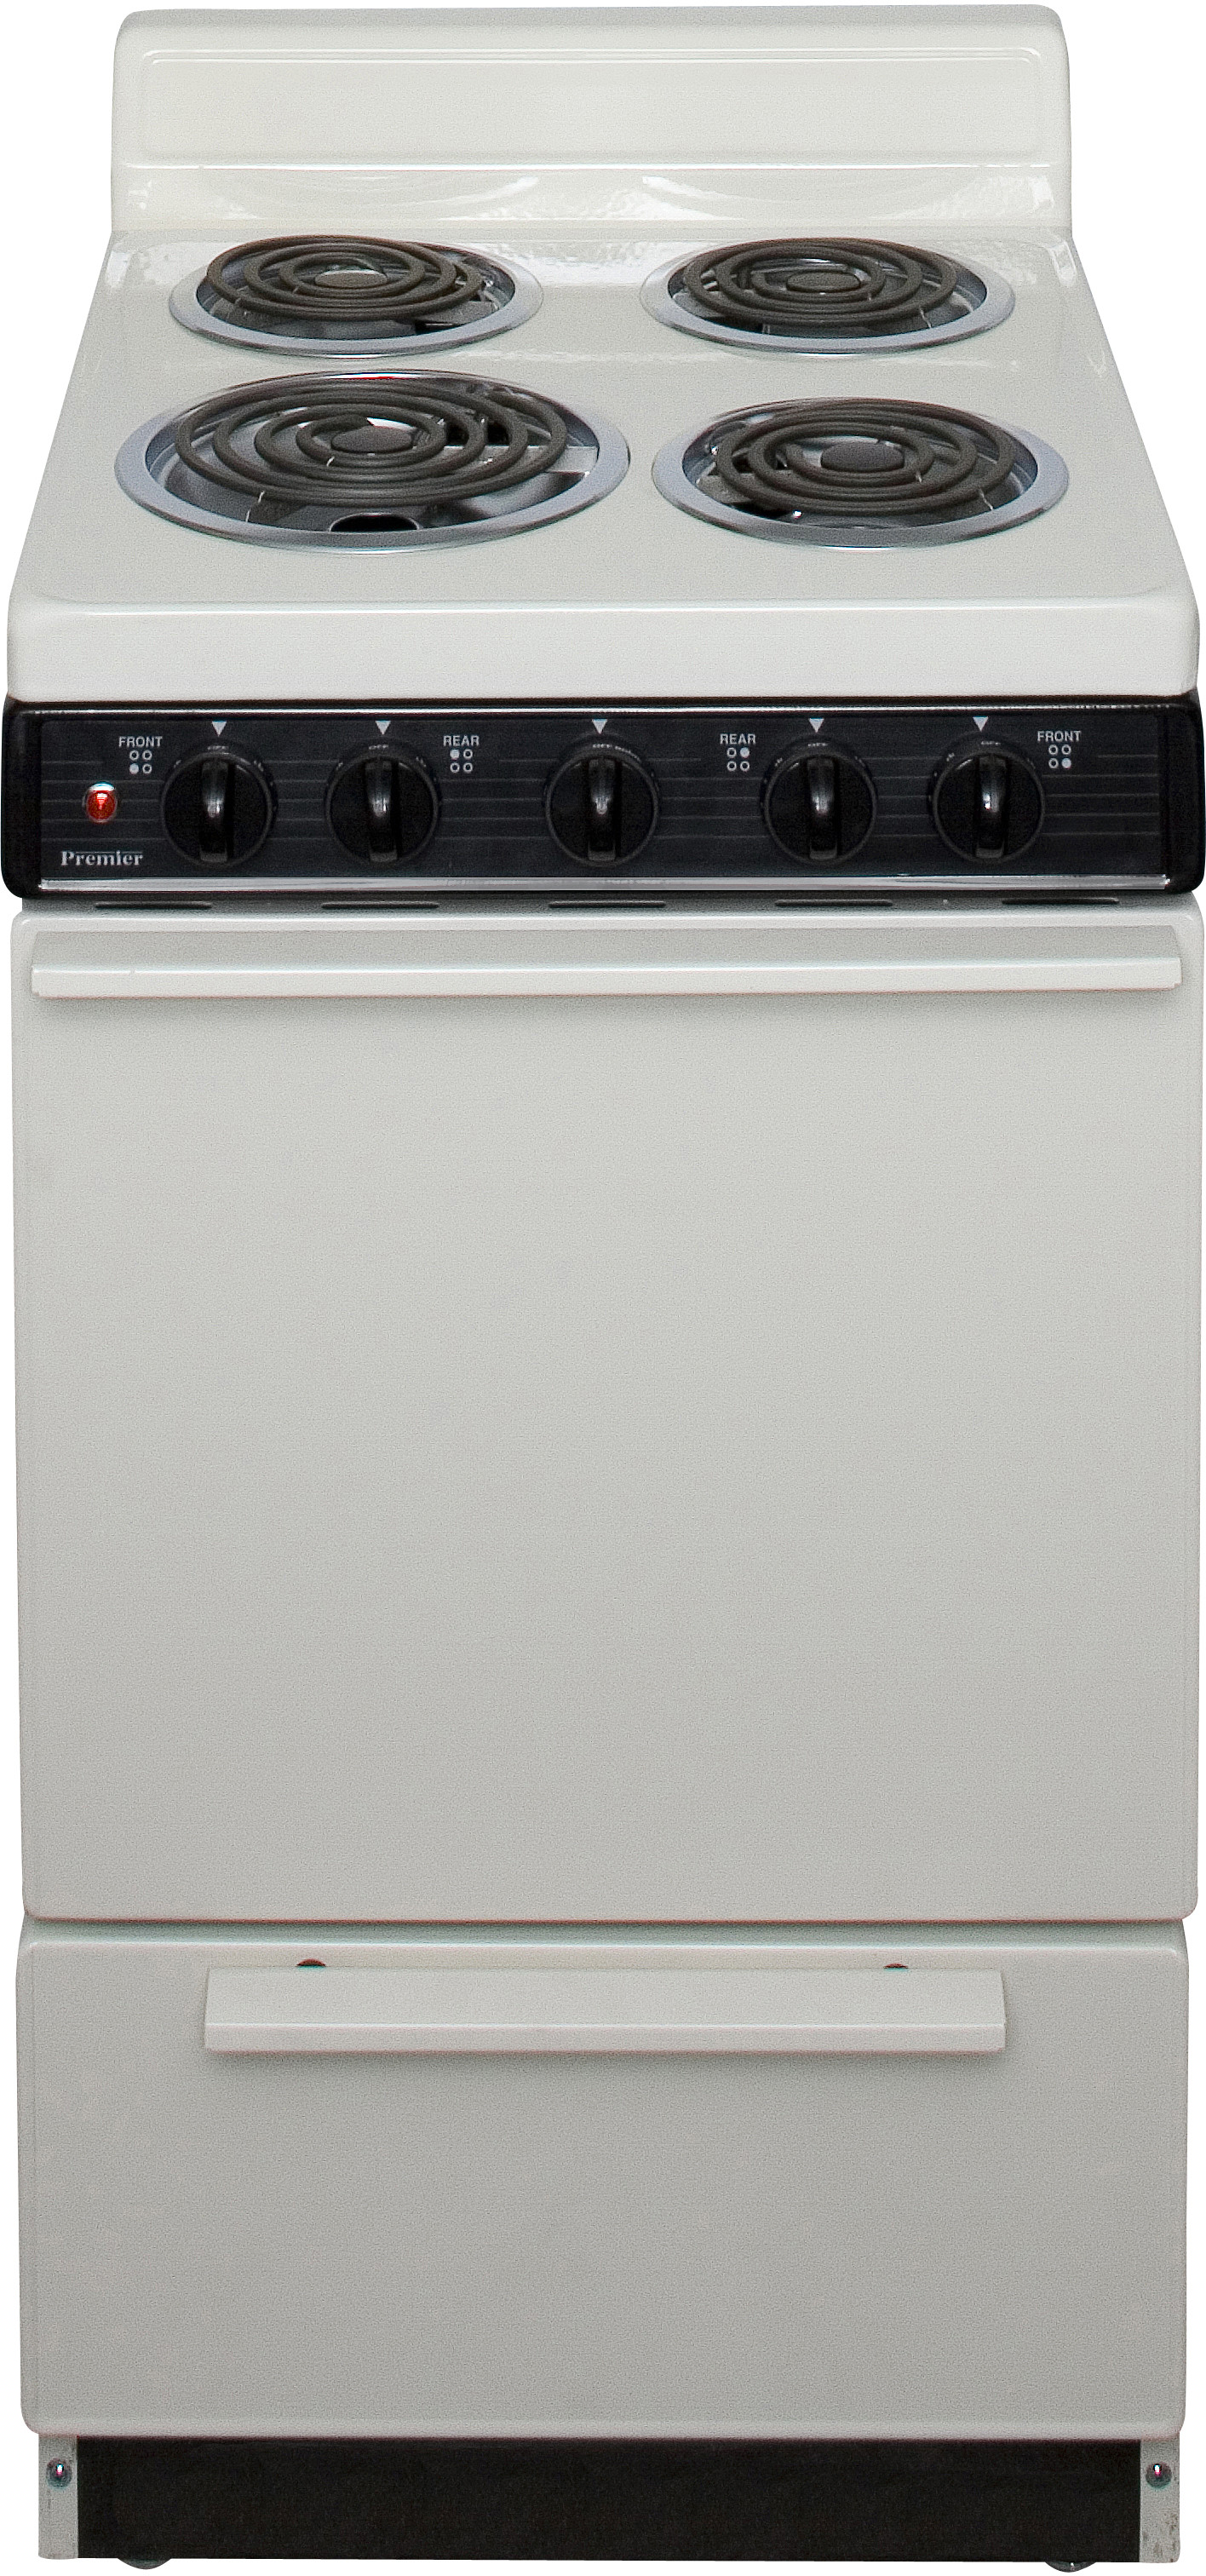 Premier Eak100t 20 Inch Freestanding Electric Range With 4 Coil Elements 2 4 Cu Ft Manual Clean Oven Surface Signal Light 4 Inch Porcelain Backguard And Storage Drawer Bisque With Black Trim